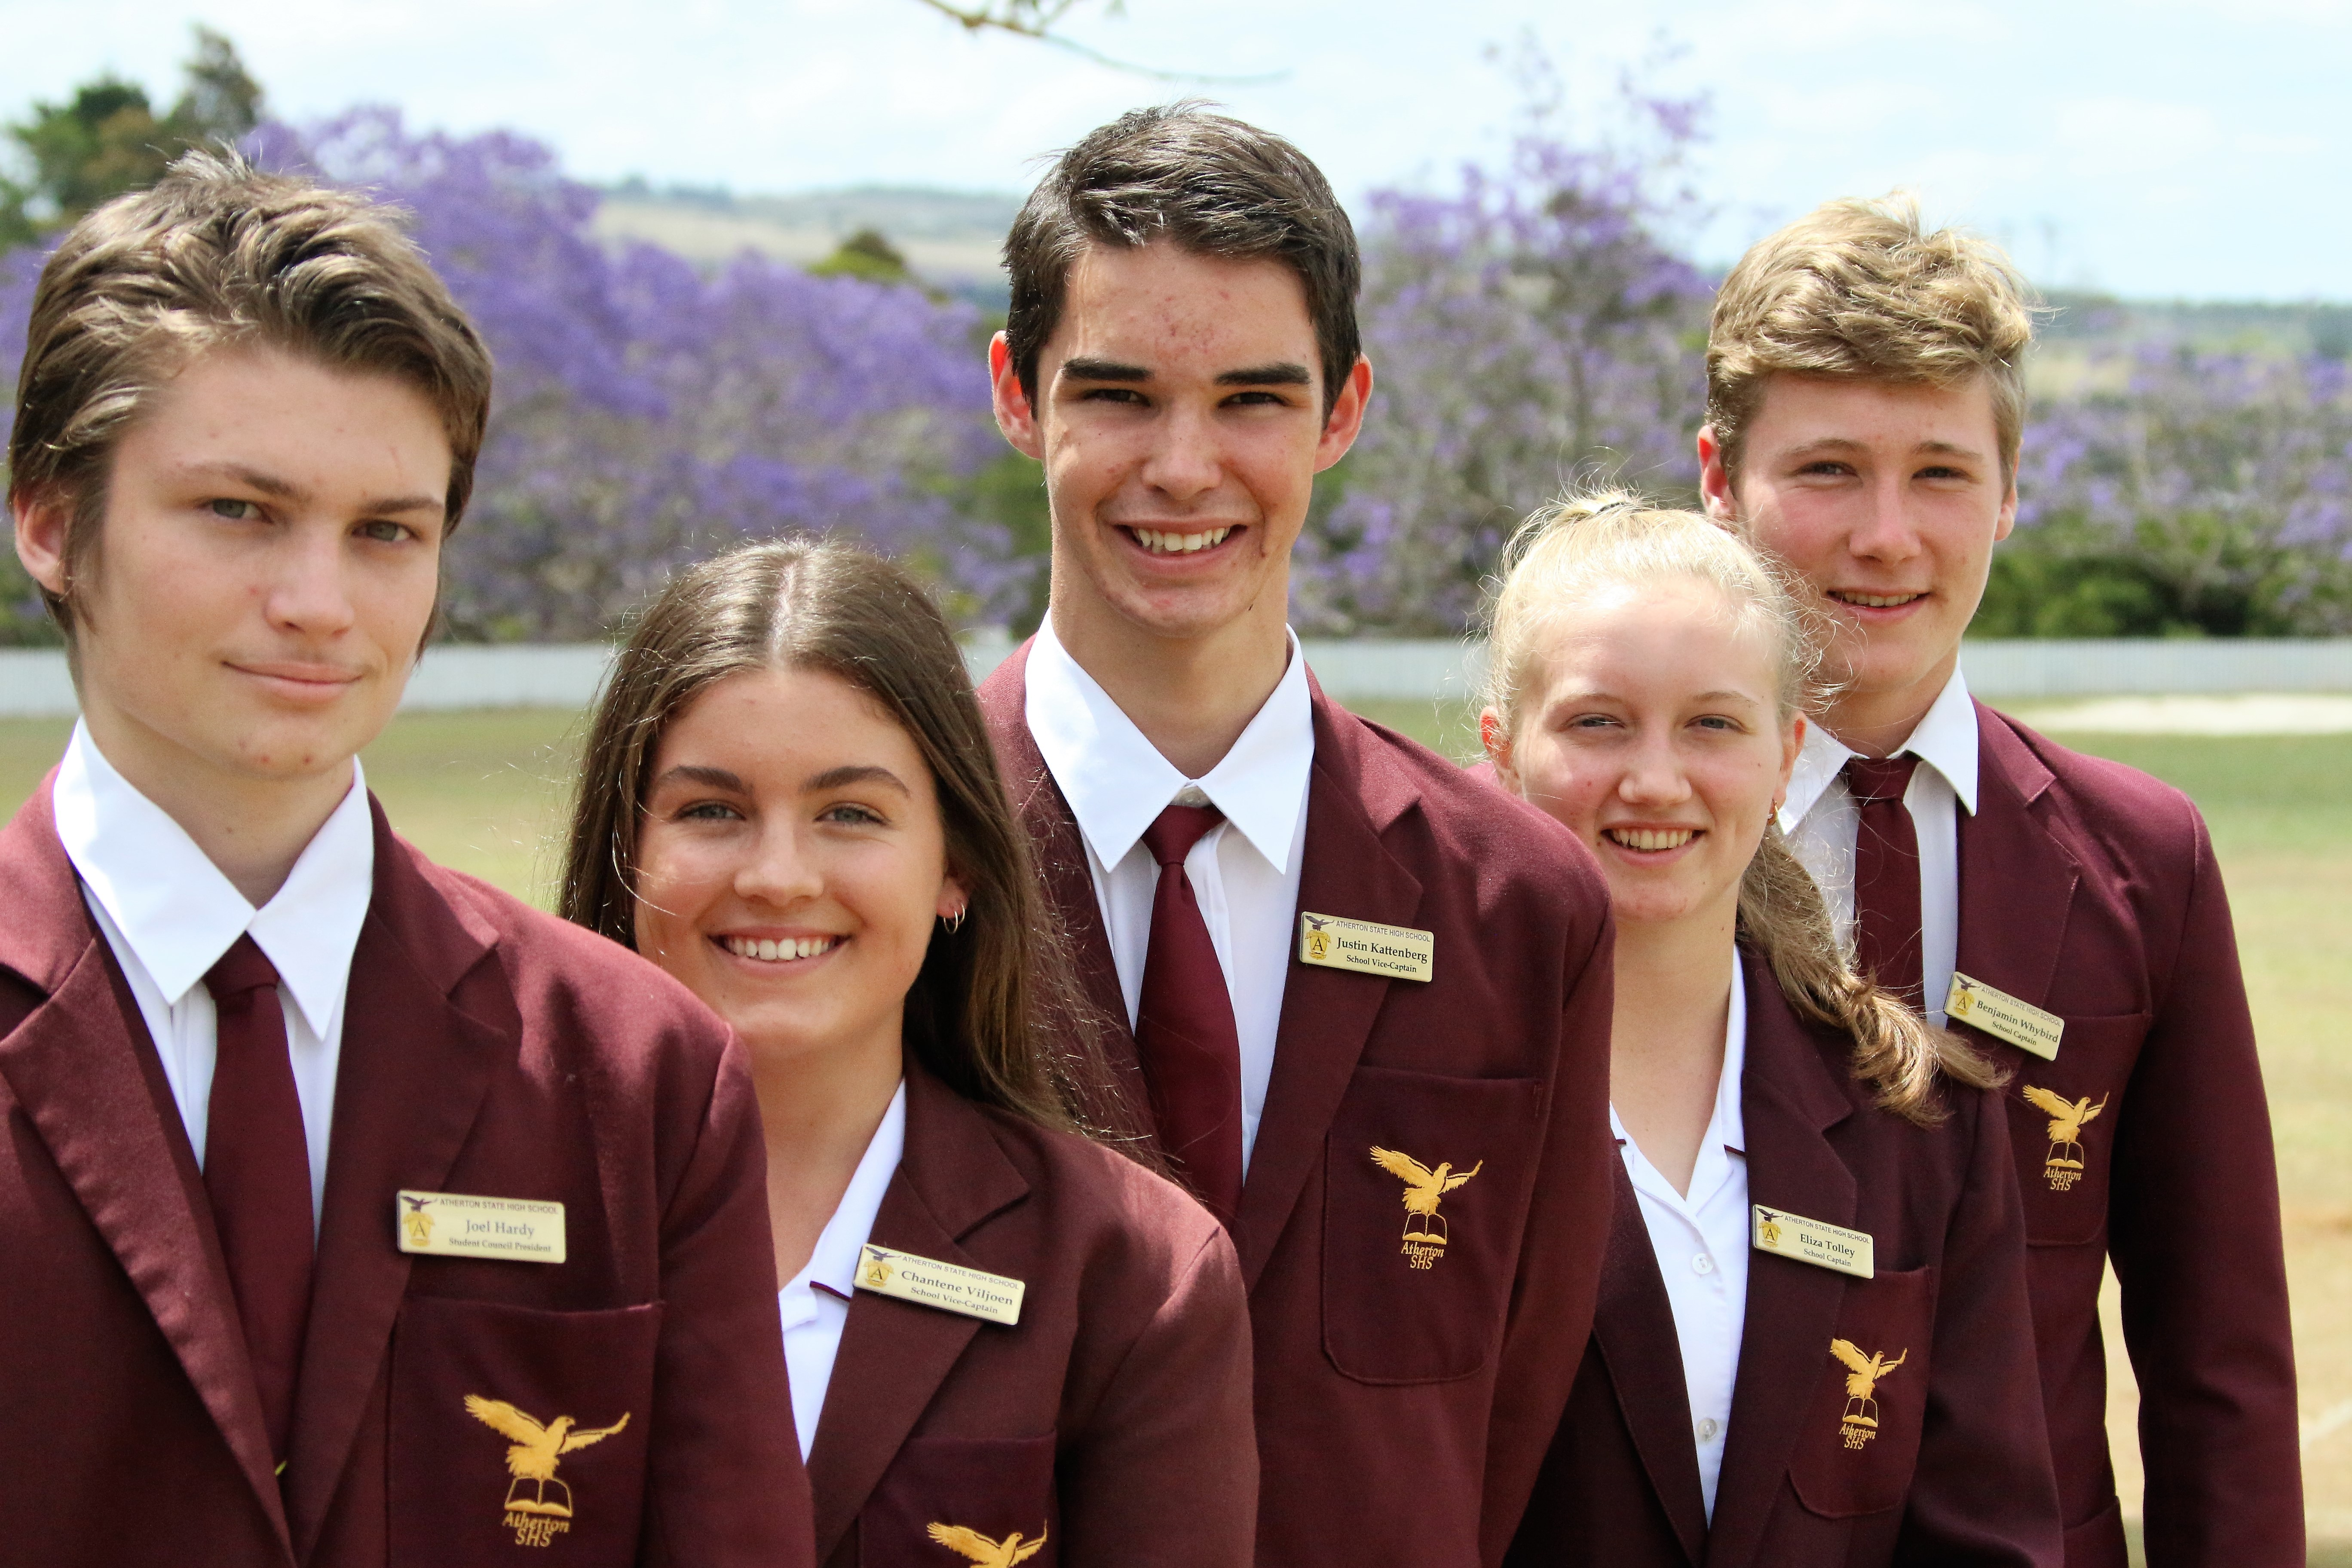 (L to R) The School Leaders 2020 for Atherton State High School are Joel Hardy (Student Council President), Chantene Viljoen (Vice-Captain), Justin Kattenberg (Vice-Captain), Eliza Tolley (School Captain), and Benjamin Whybird (School Captain) View the School